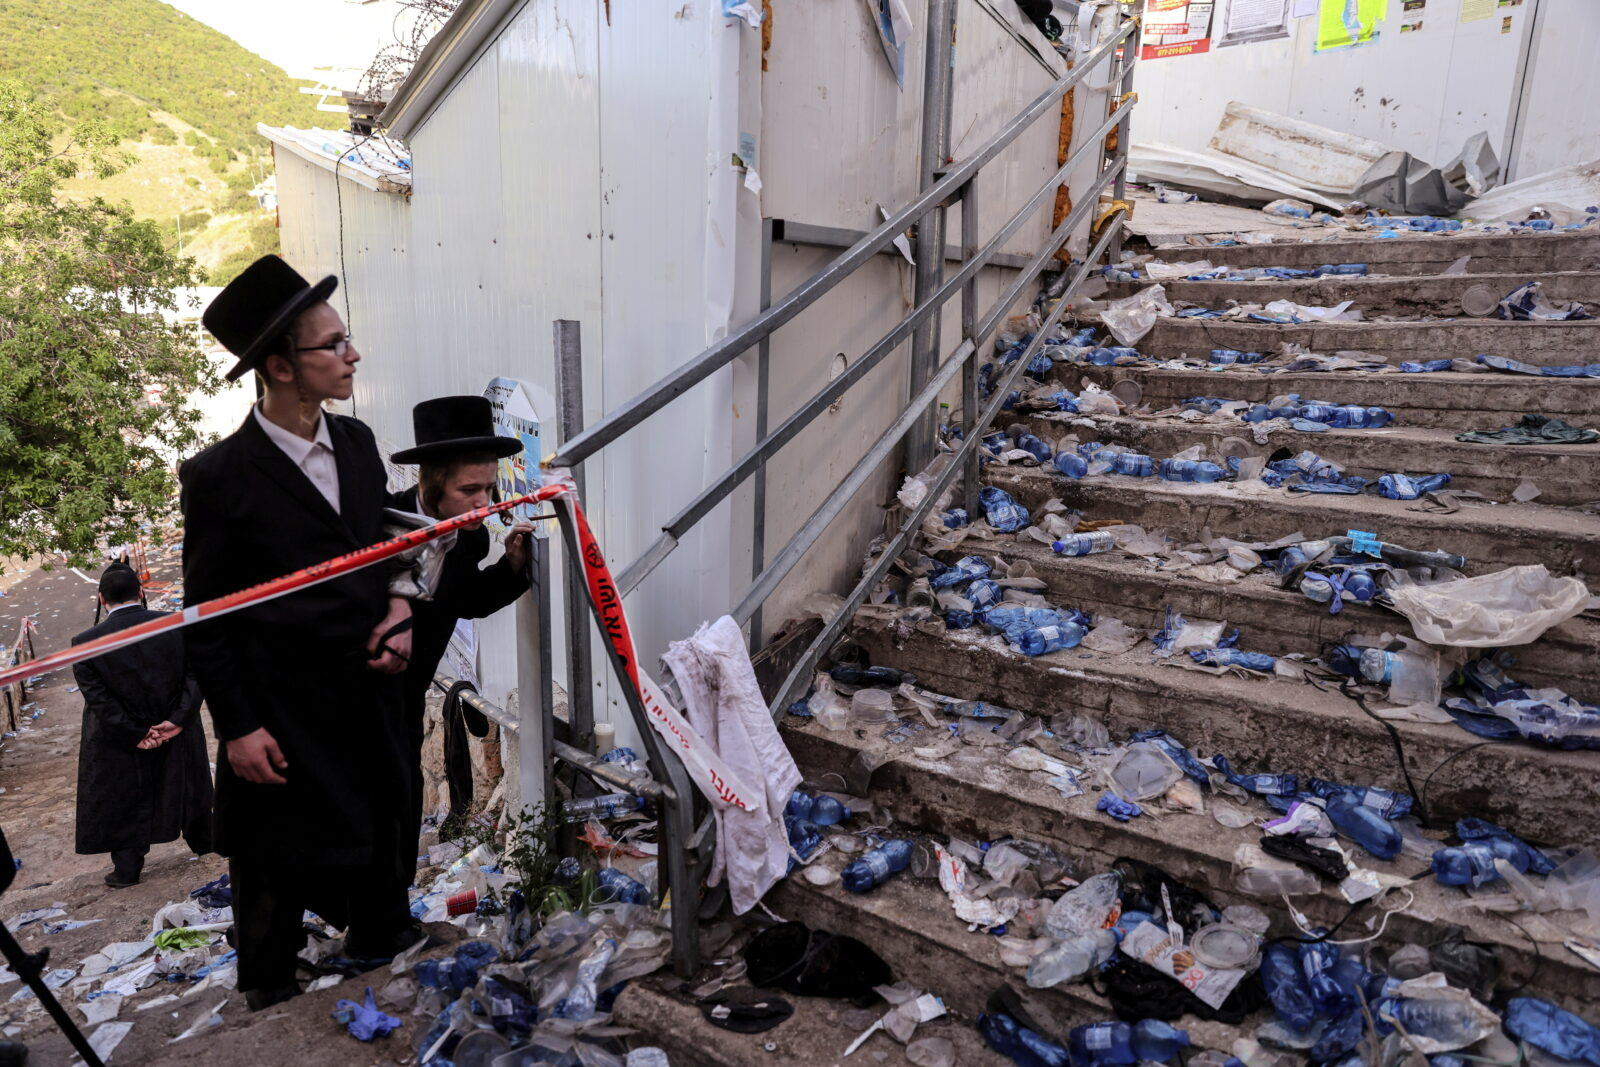 Ultra Orthodox Jews look at stairs with waste on it in Mount Meron